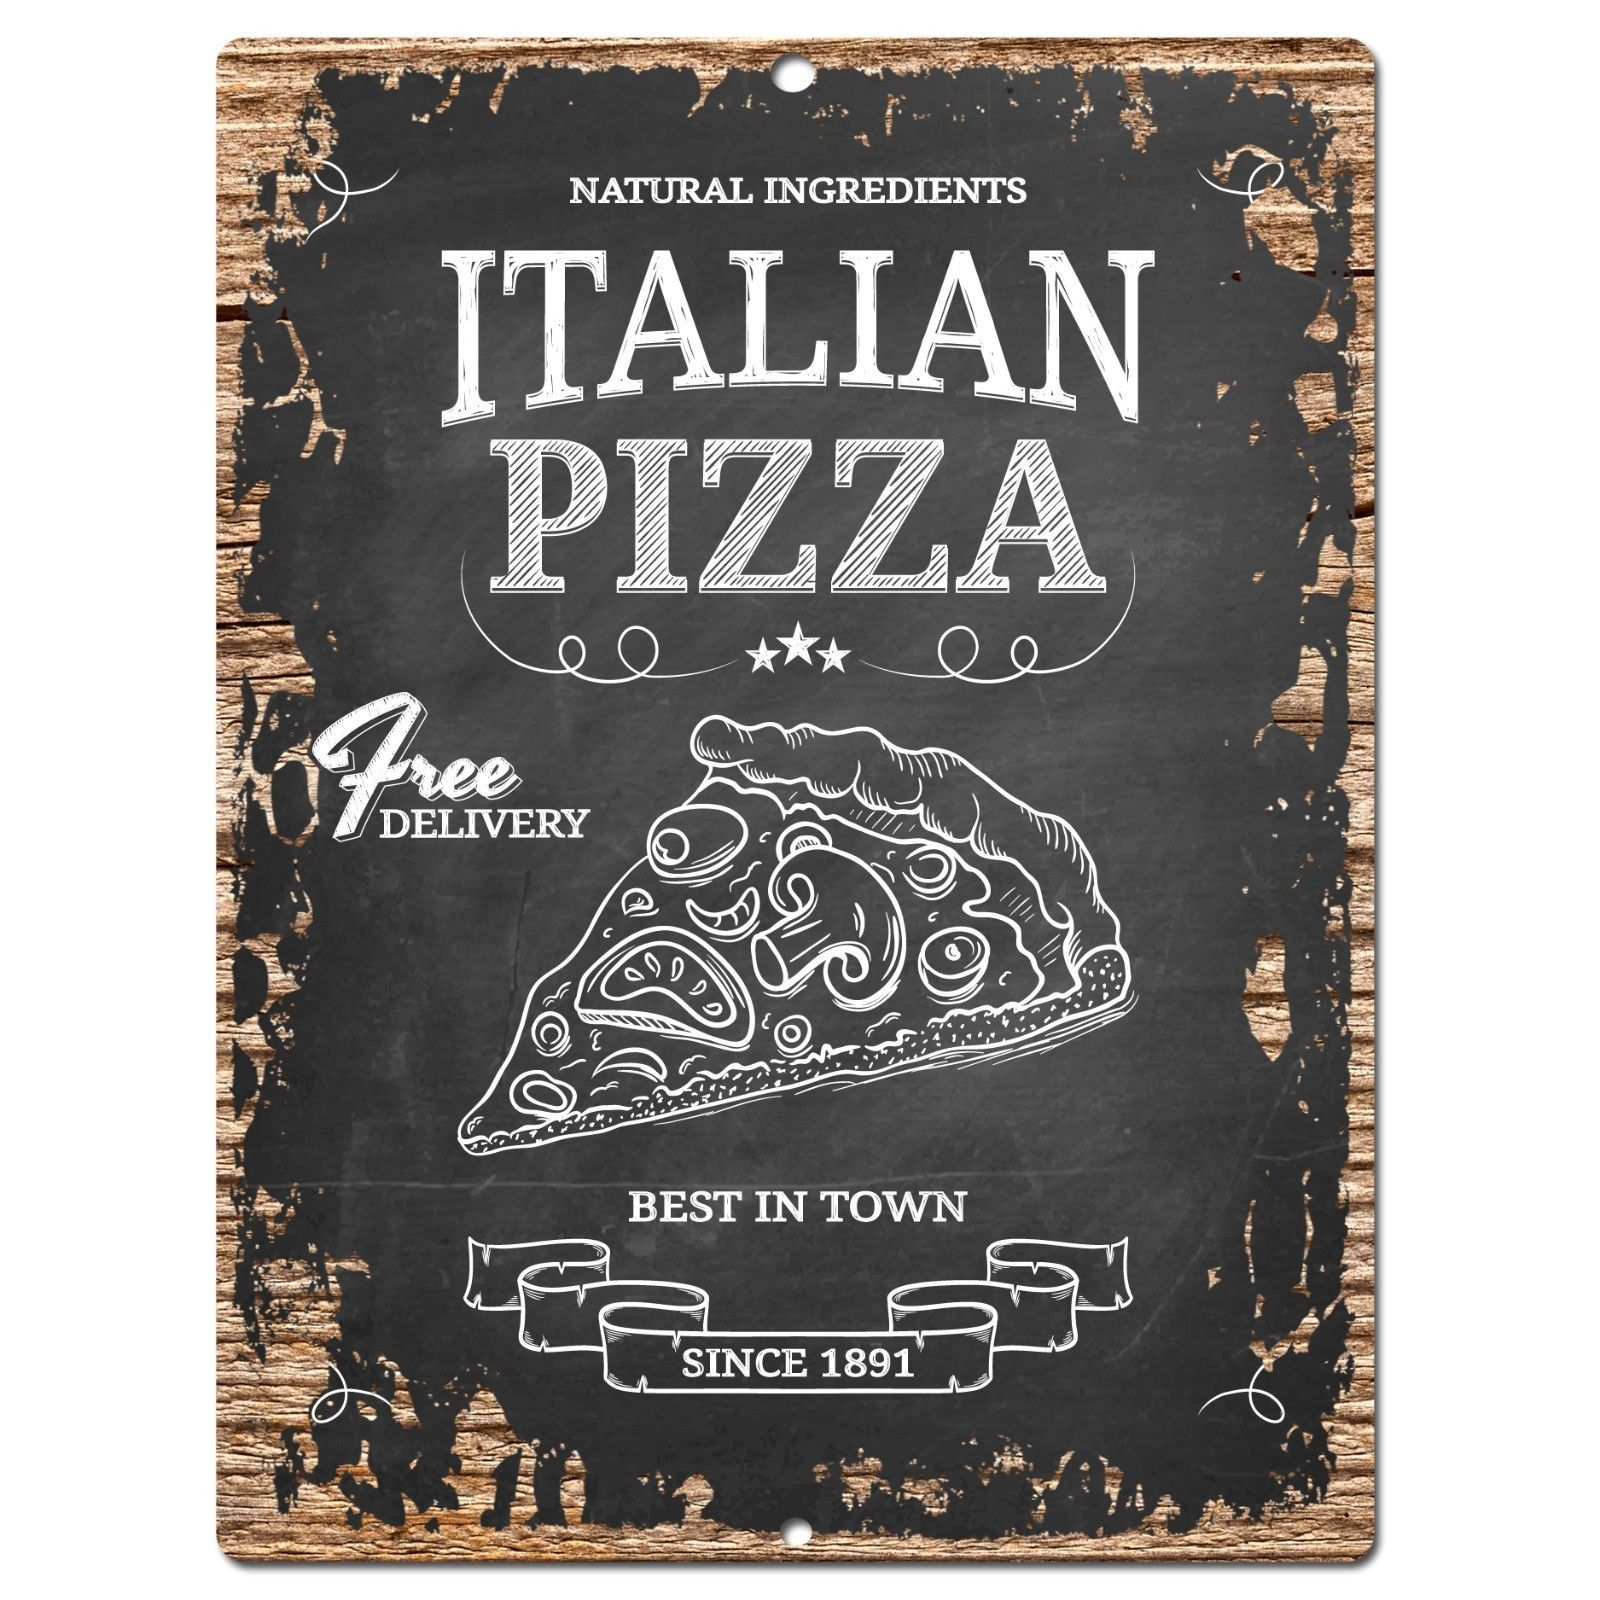 Pp0780 Vintage Italian Pizza Chic Plate Sign Home Shop Restaurant Cafe Decor Shabby Chic Painting Shabby Chic Diy Shabby Chic Room